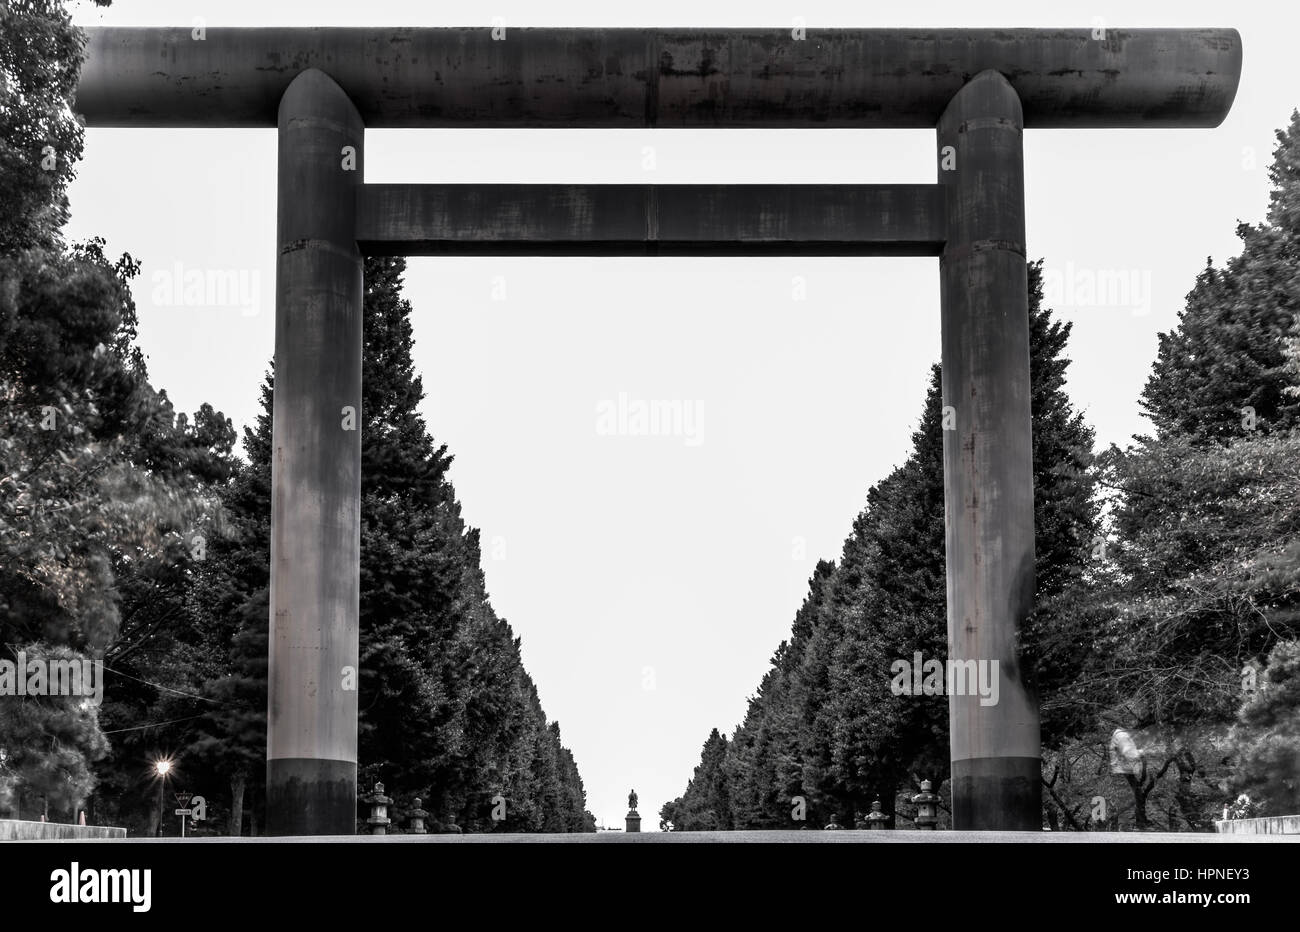 A large arch in Chiyoda that leads towards the controversial Yasukuni Shrine. Taken in black and white. - Stock Image